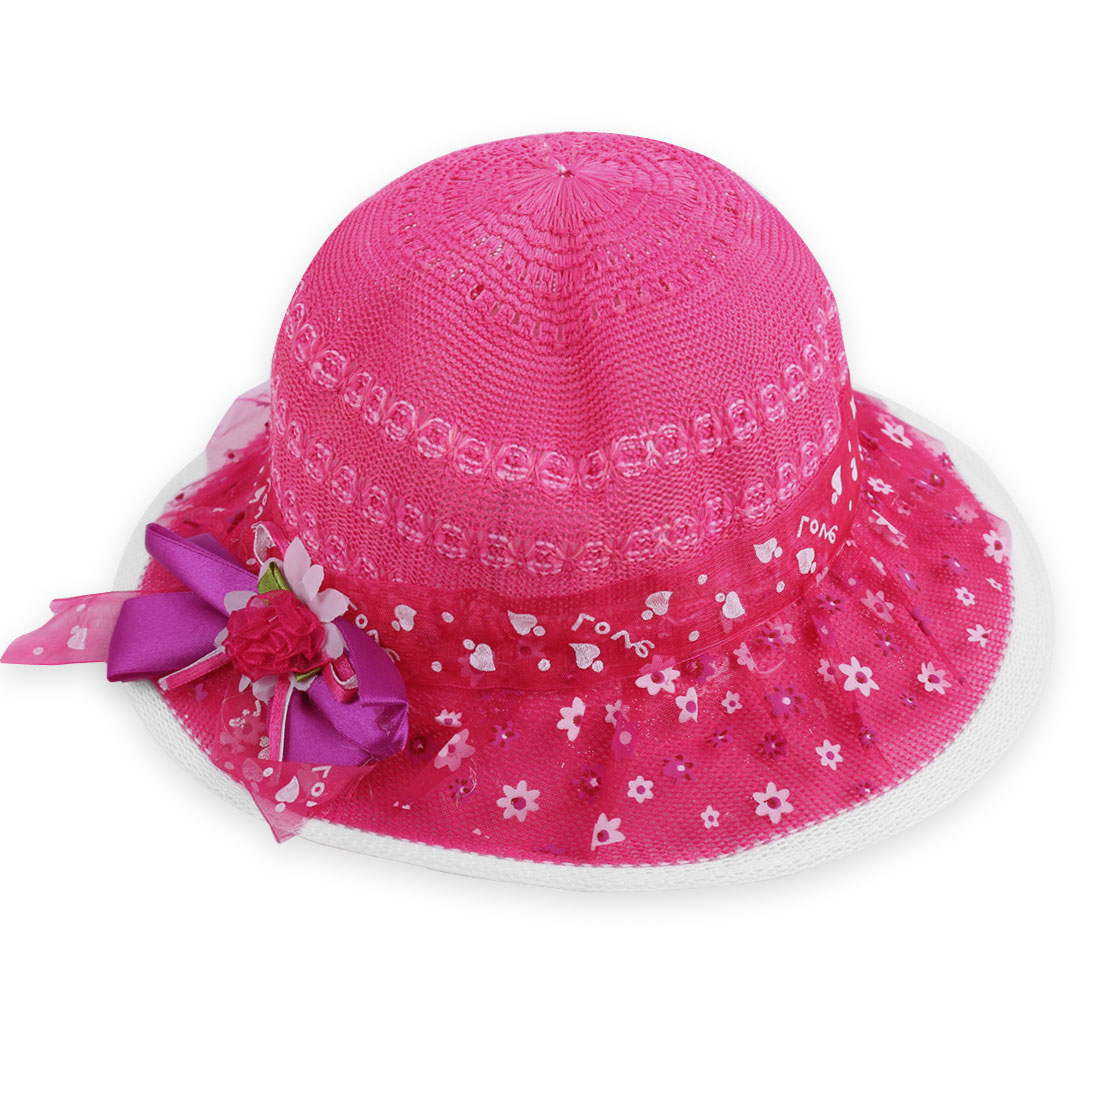 Girls New Fashion Fuchsia Bowtie and Flower Decor Hollow Out Hat